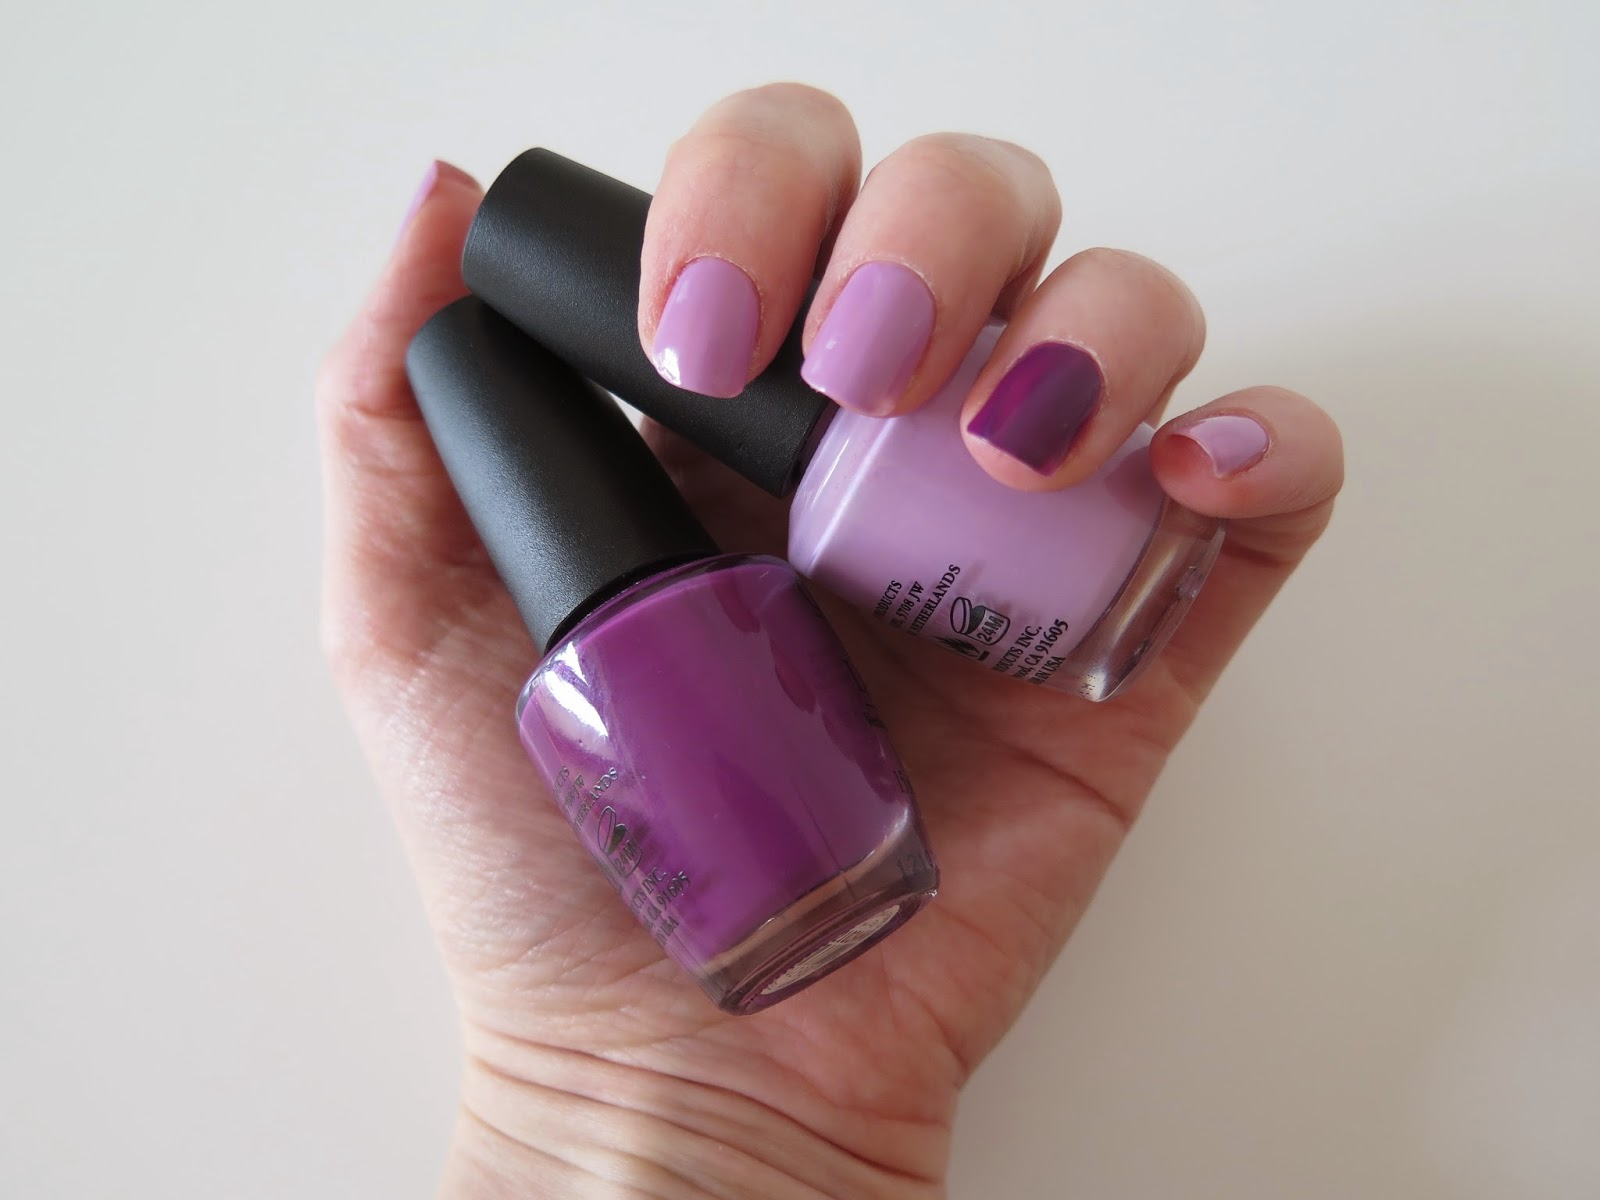 NOTD, Nails, nail varnish, OPI, purple nails